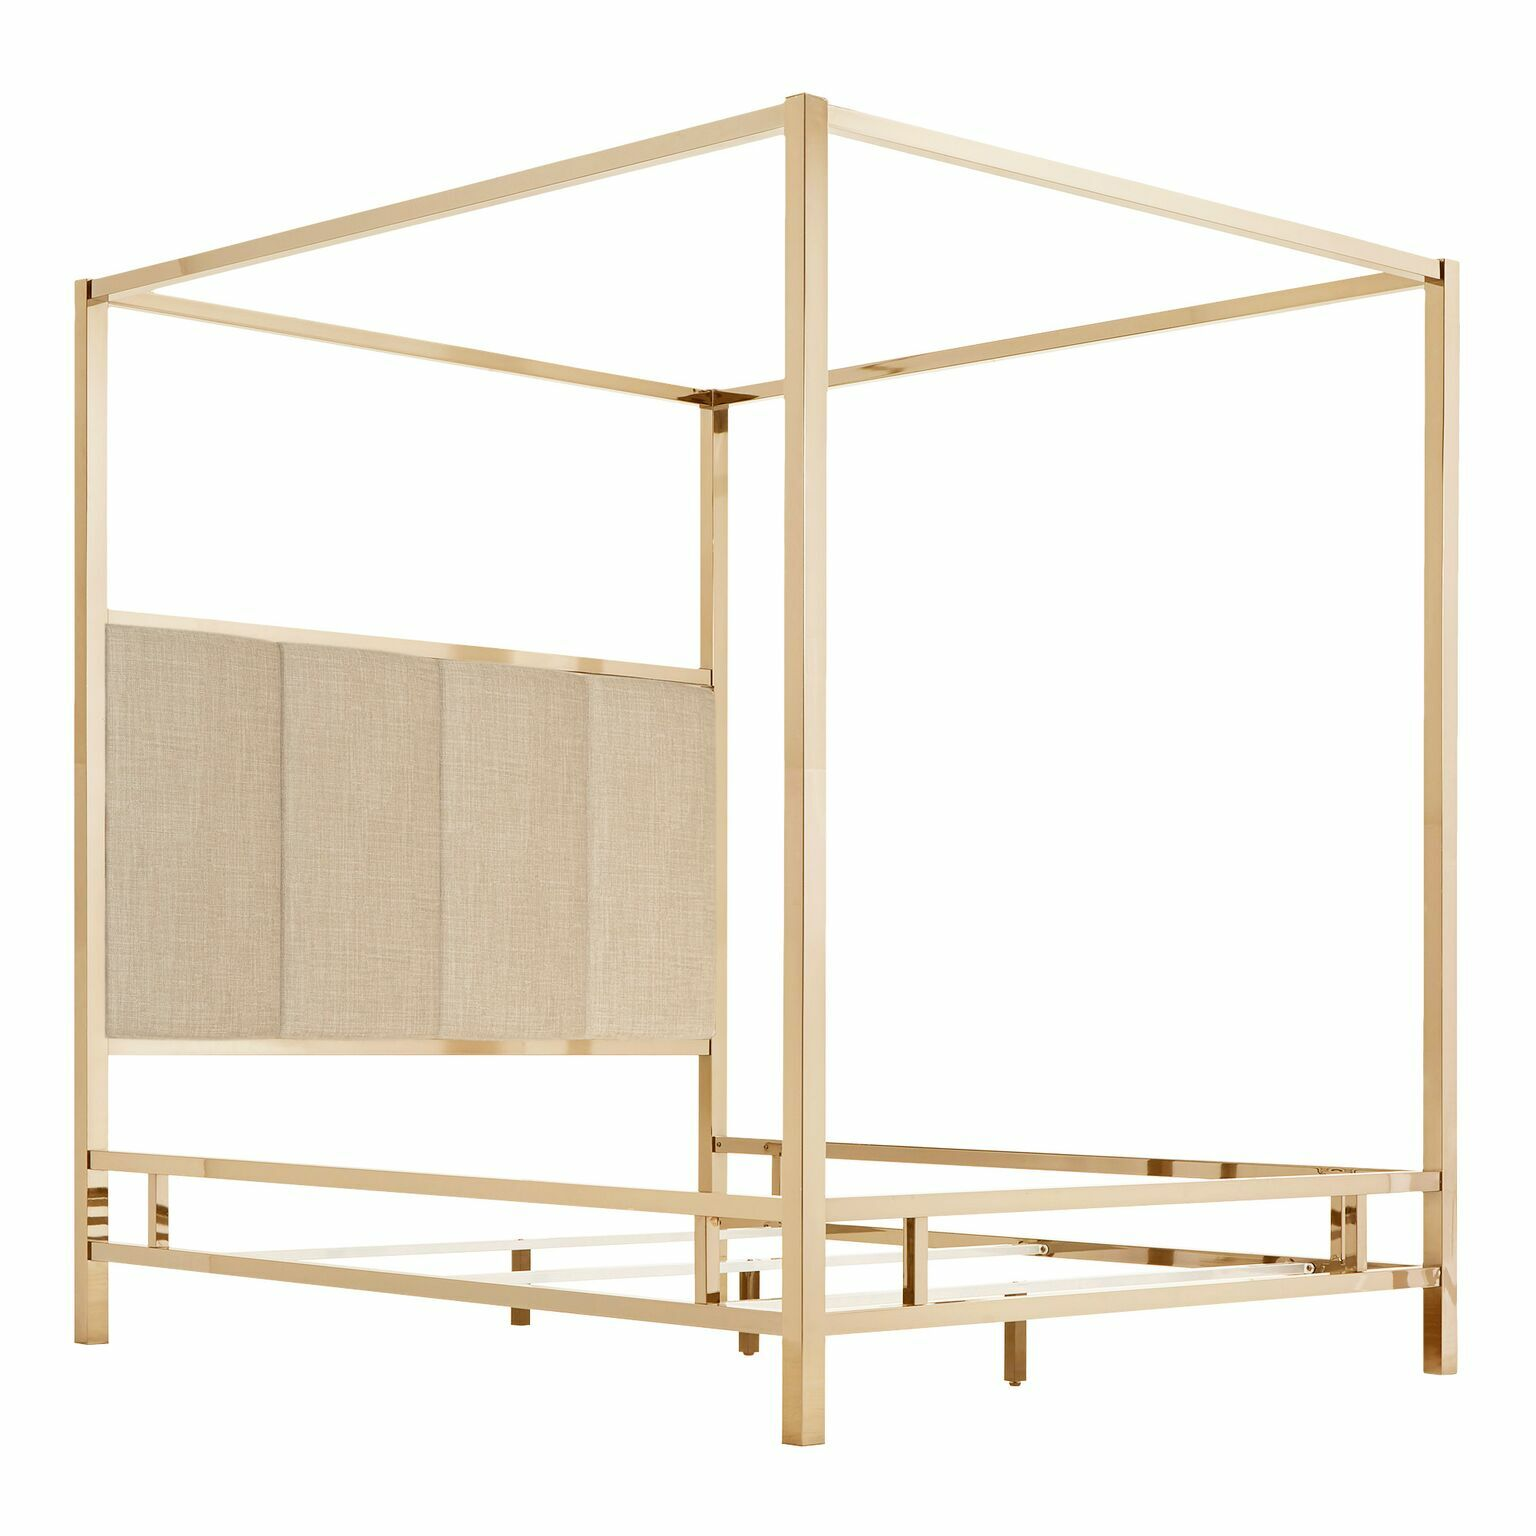 Wicklund Upholstered Canopy Bed Color (Frame/Headboard): Champagne Gold/Beige, Size: Full